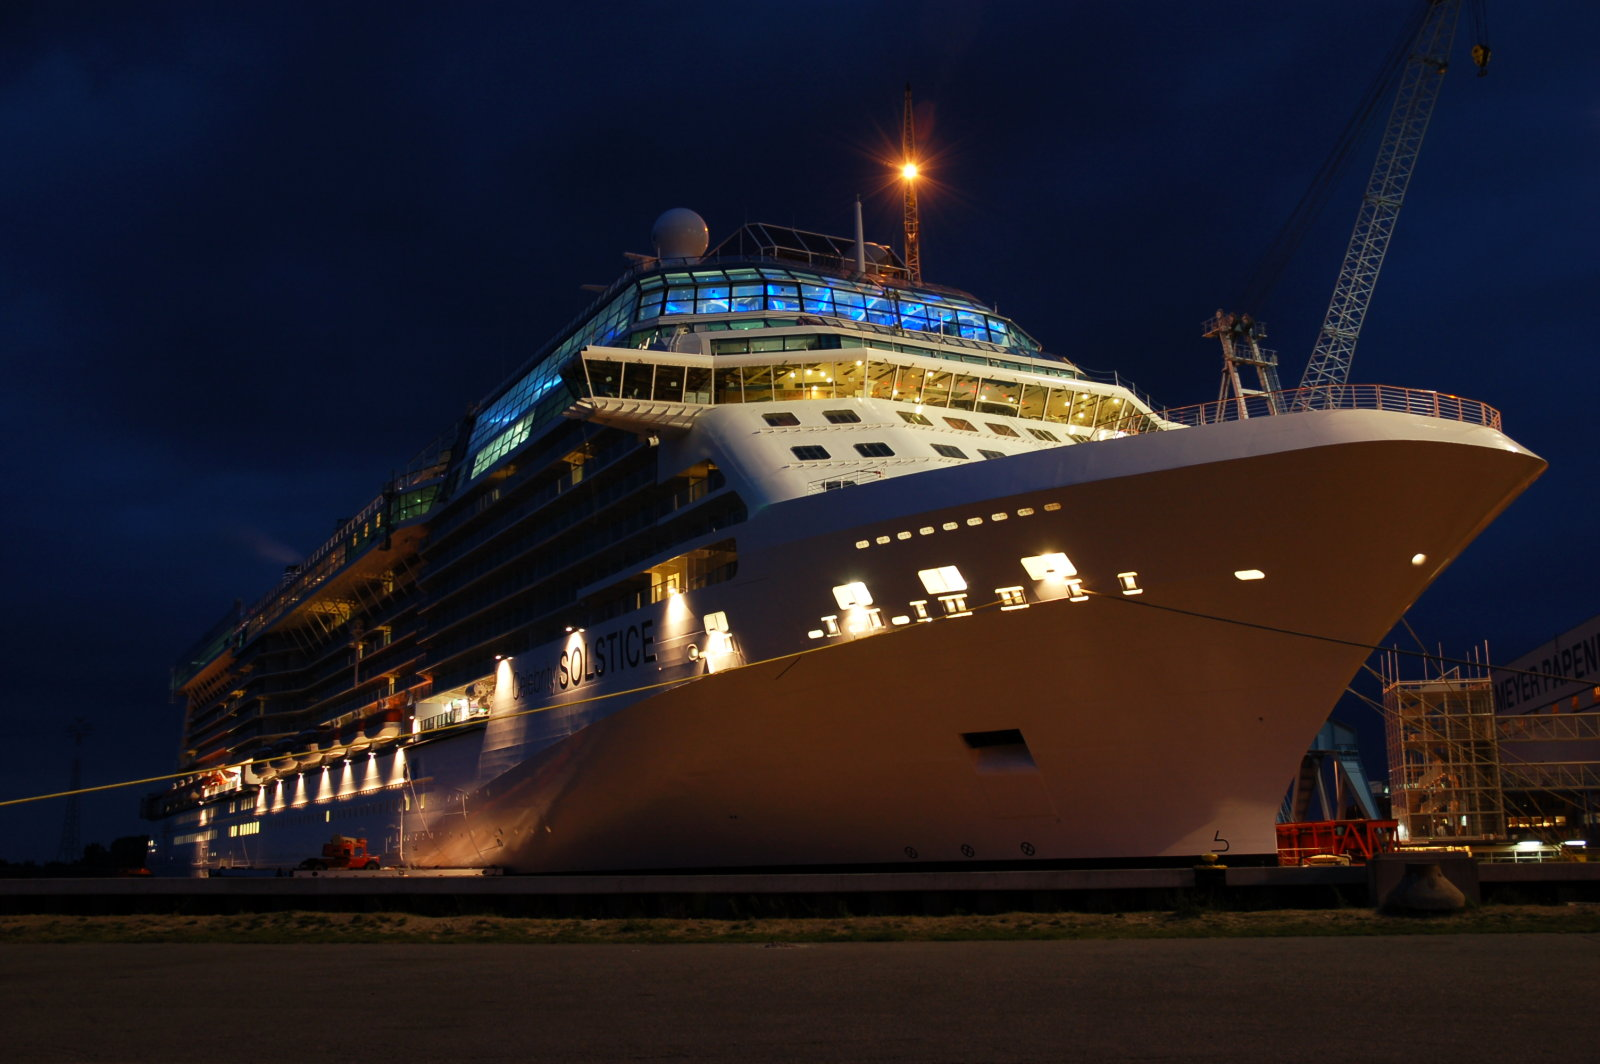 http://upload.wikimedia.org/wikipedia/commons/c/c1/Celebrity_Solstice_at_night.jpg